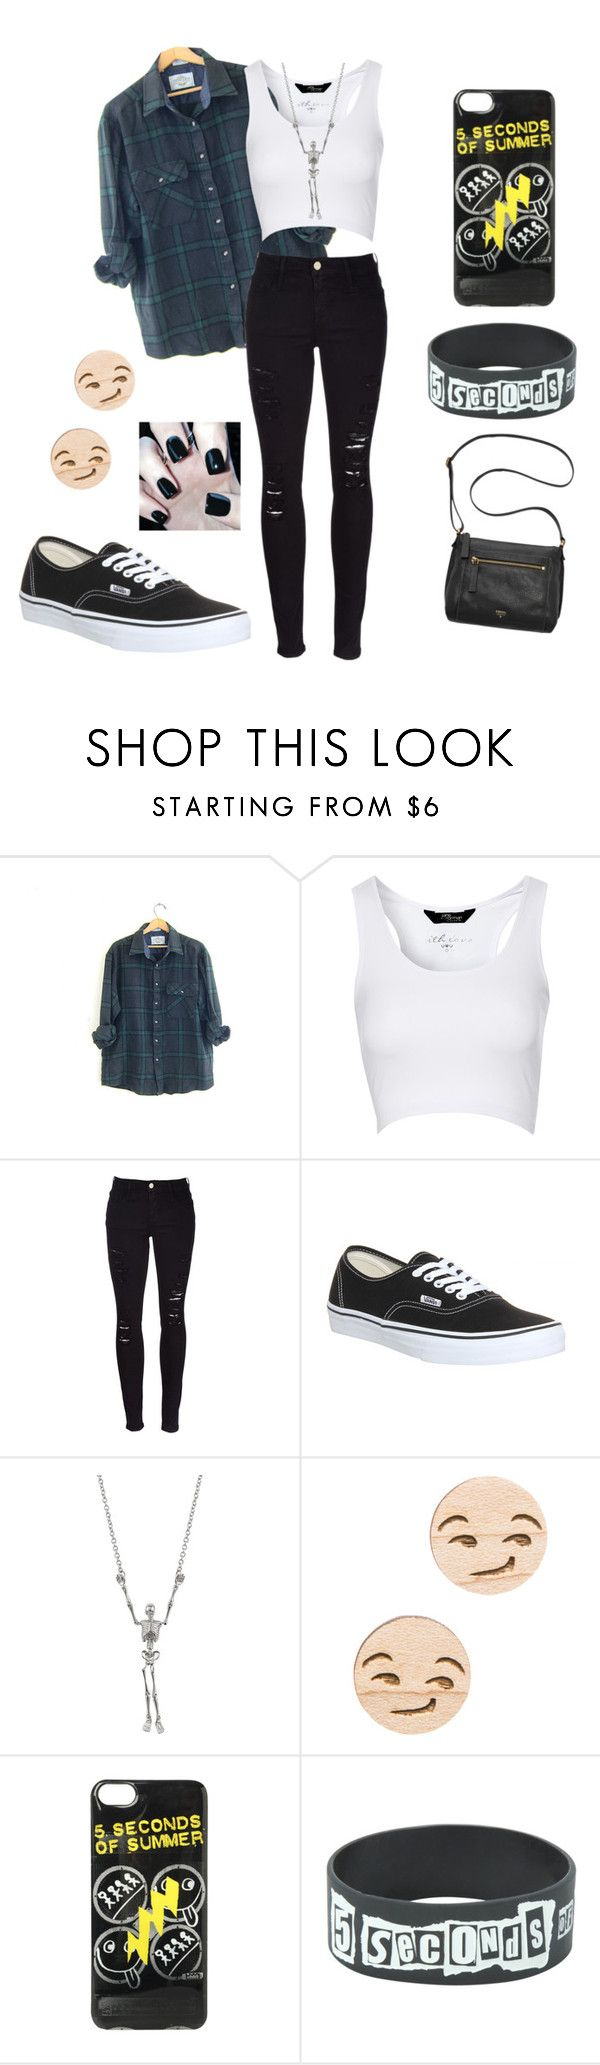 """""""5sos Concert Outfit Ideas #3"""" by jazziwheat ❤ liked on Polyvore featuring Jane Norman, Frame Denim, Vans, GoodWood and FOSSIL"""